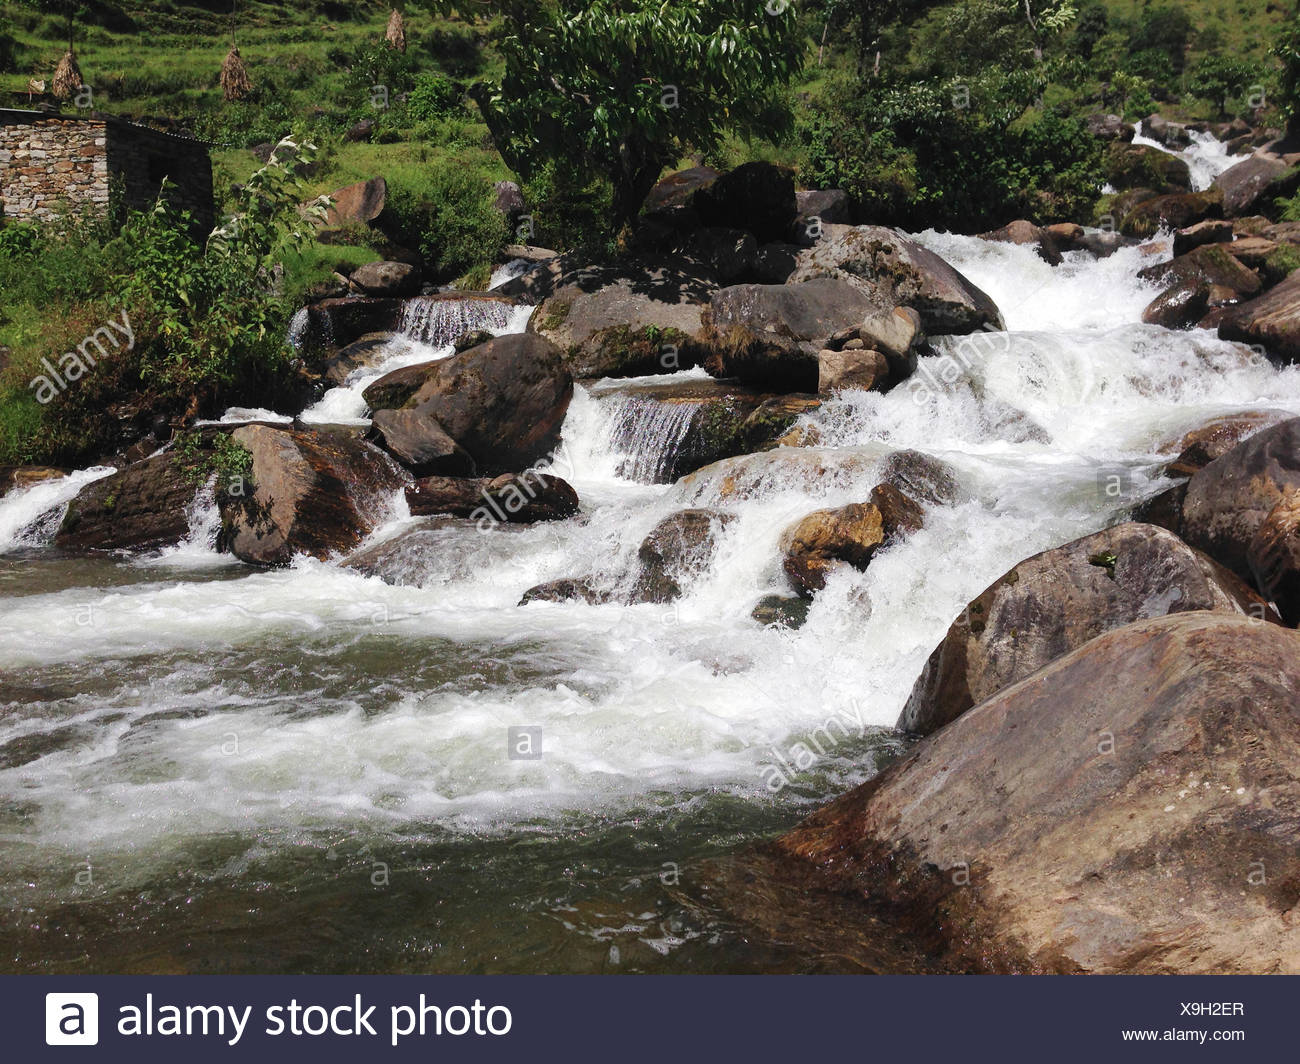 River flowing over rocks - Stock Image